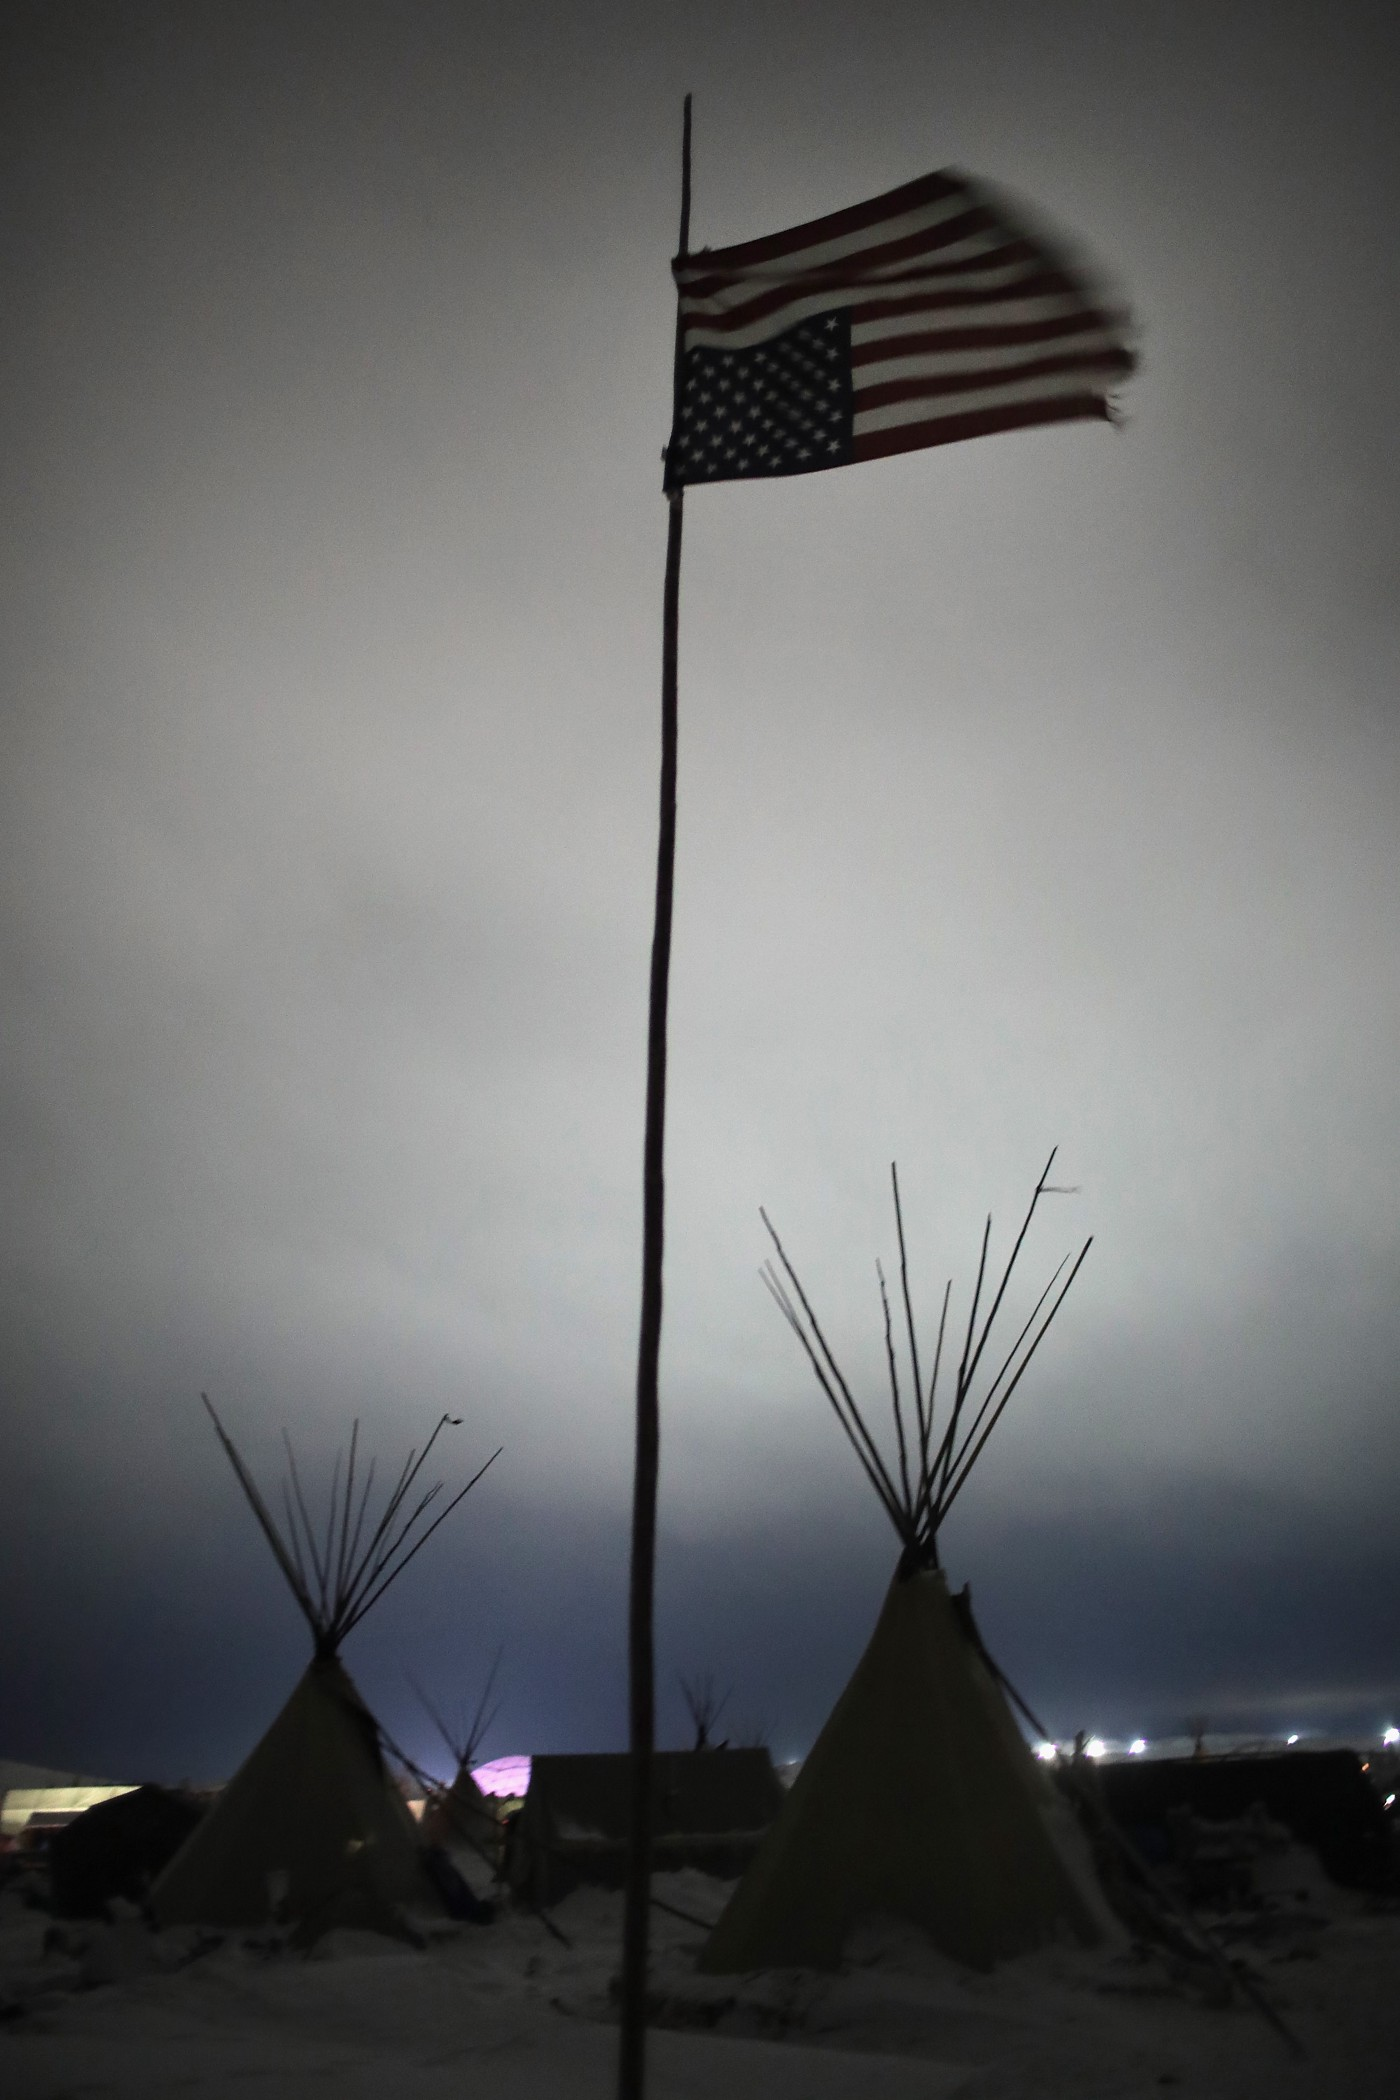 A photo of an upside down American flag hanging over a dark, ominous sky in Oceti Sakowin Camp.